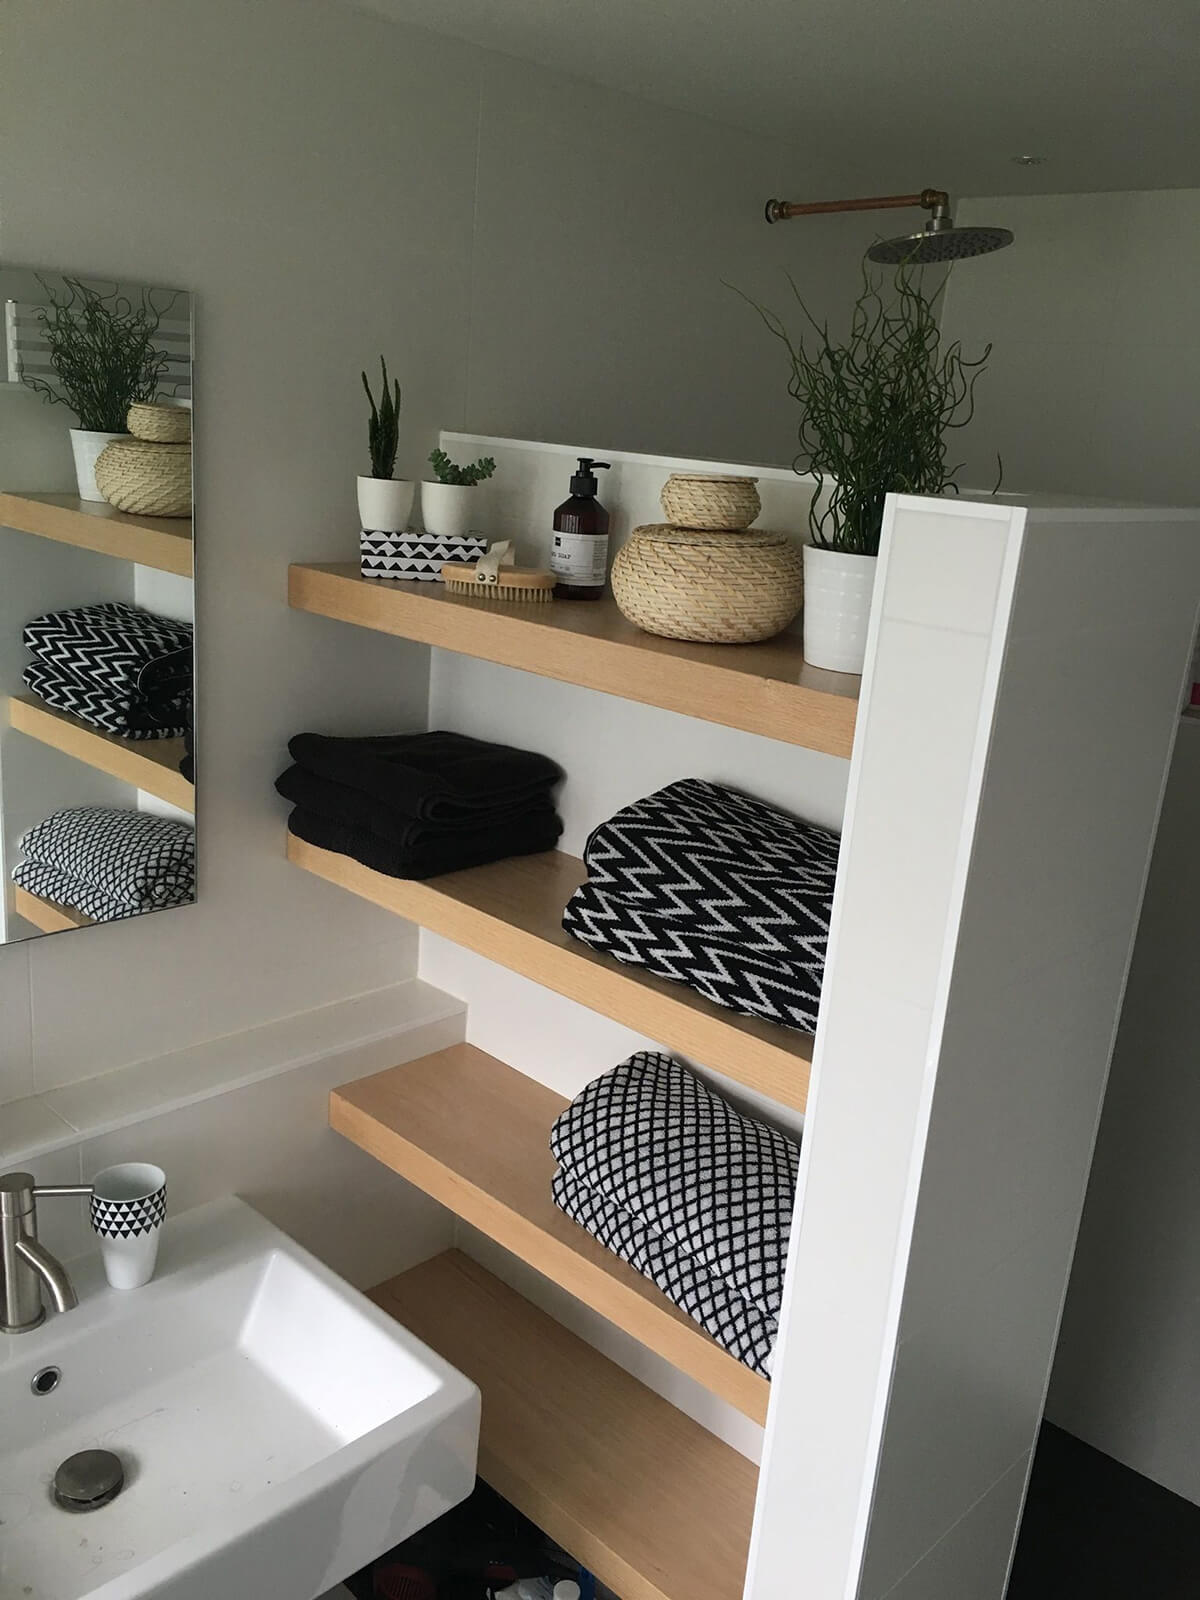 25 best built-in bathroom shelf and storage ideas for 2020